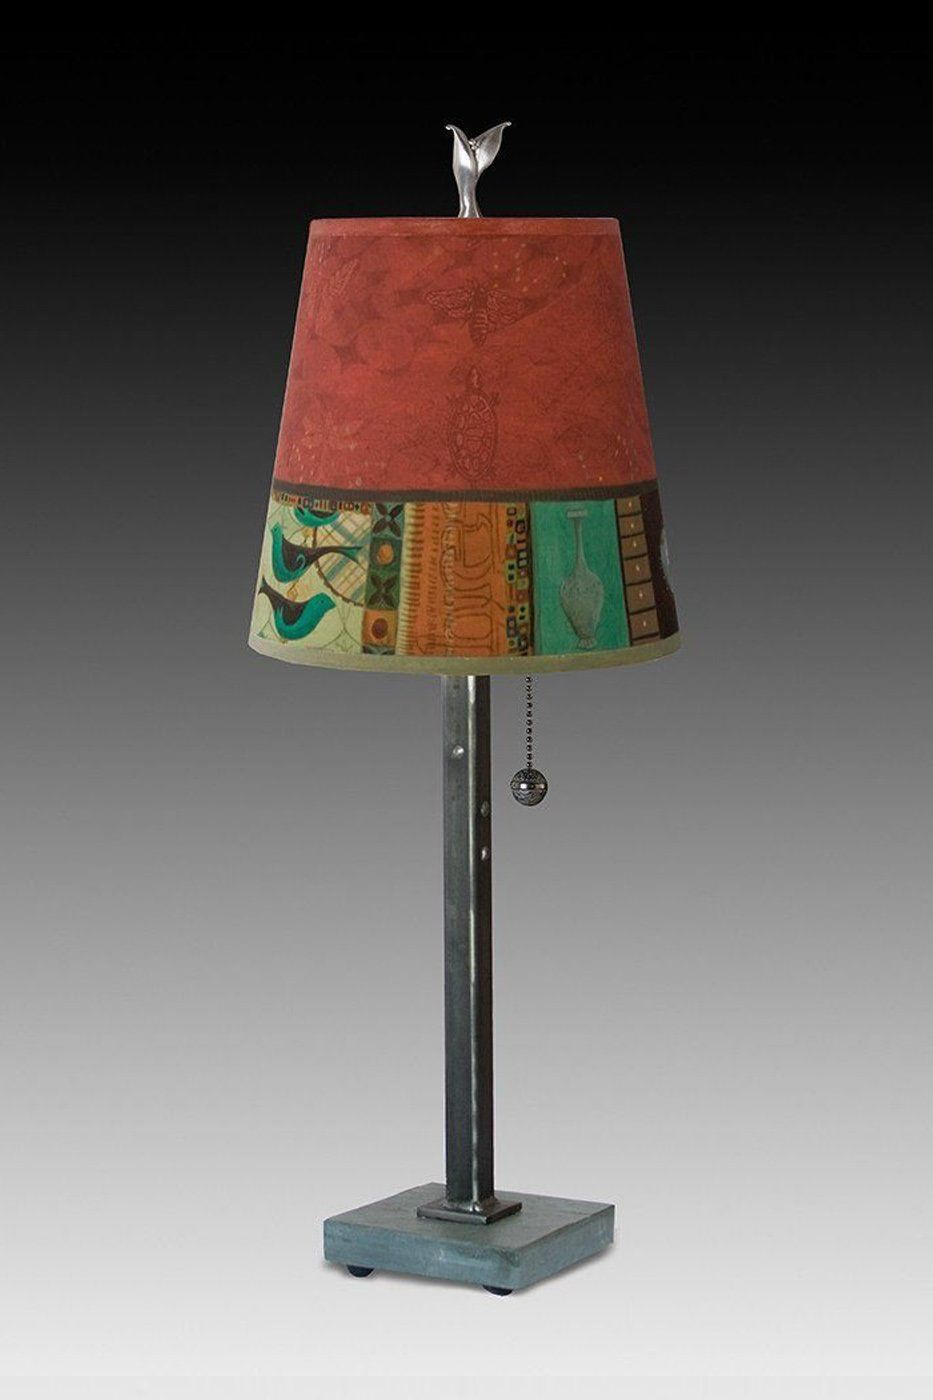 Steel Table Lamp on Italian Marble Base with Small Drum Shade in Red Match